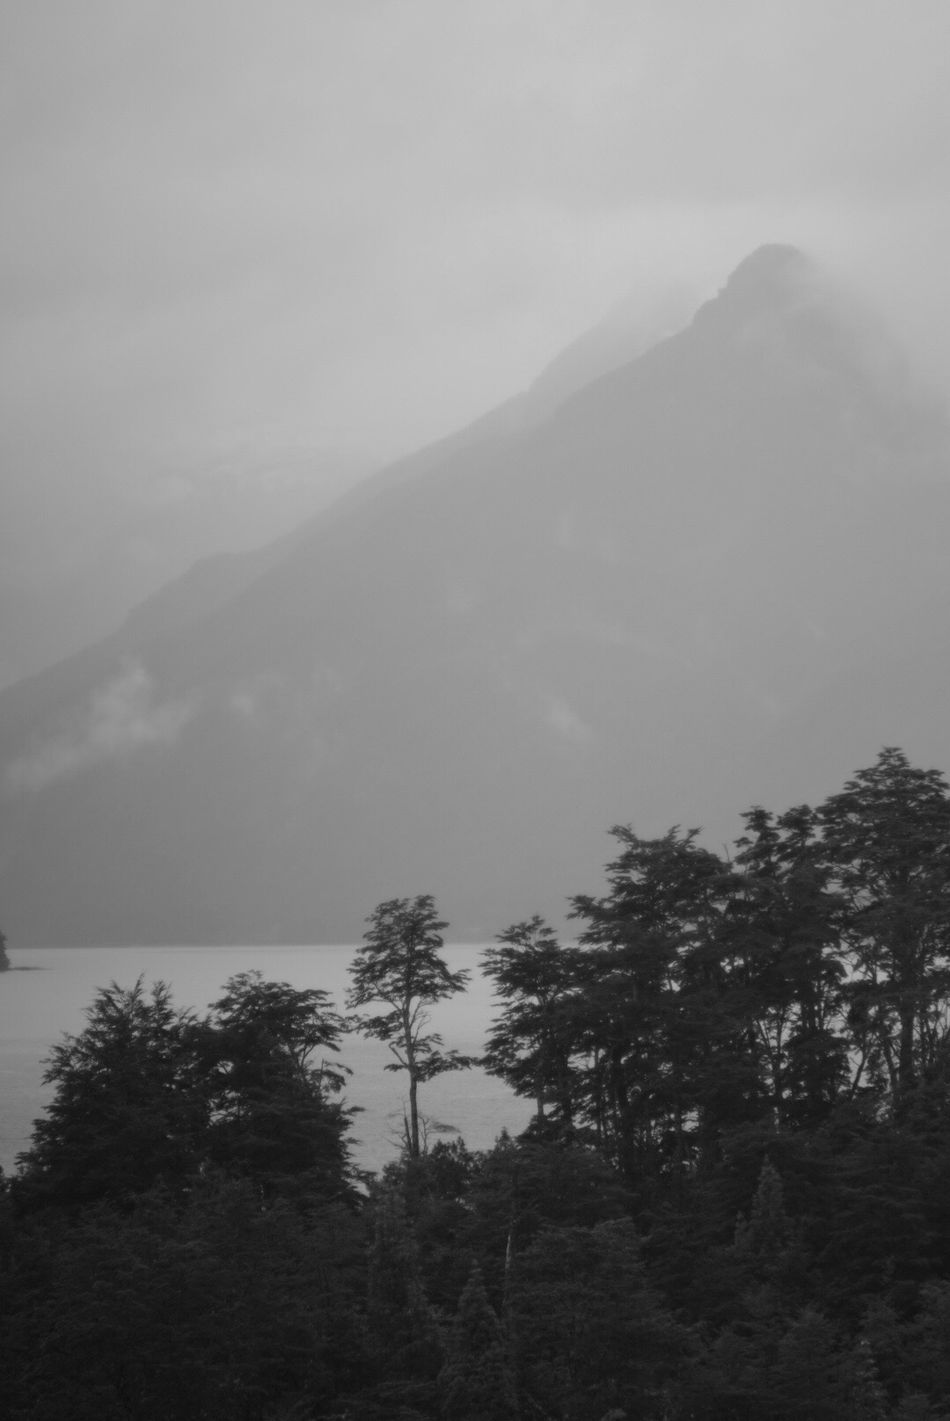 Mundo Jurasico Tree Mountain Growth Nature Fog Rain Landscape Lake No People Outdoors Scenics Beauty In Nature Tranquility Tranquility Solitude Tranquil Scene Untouched Faded Chile Sony A6000 EyeEm Nature Lover Black And White Blackandwhite Black & White Eye4photography